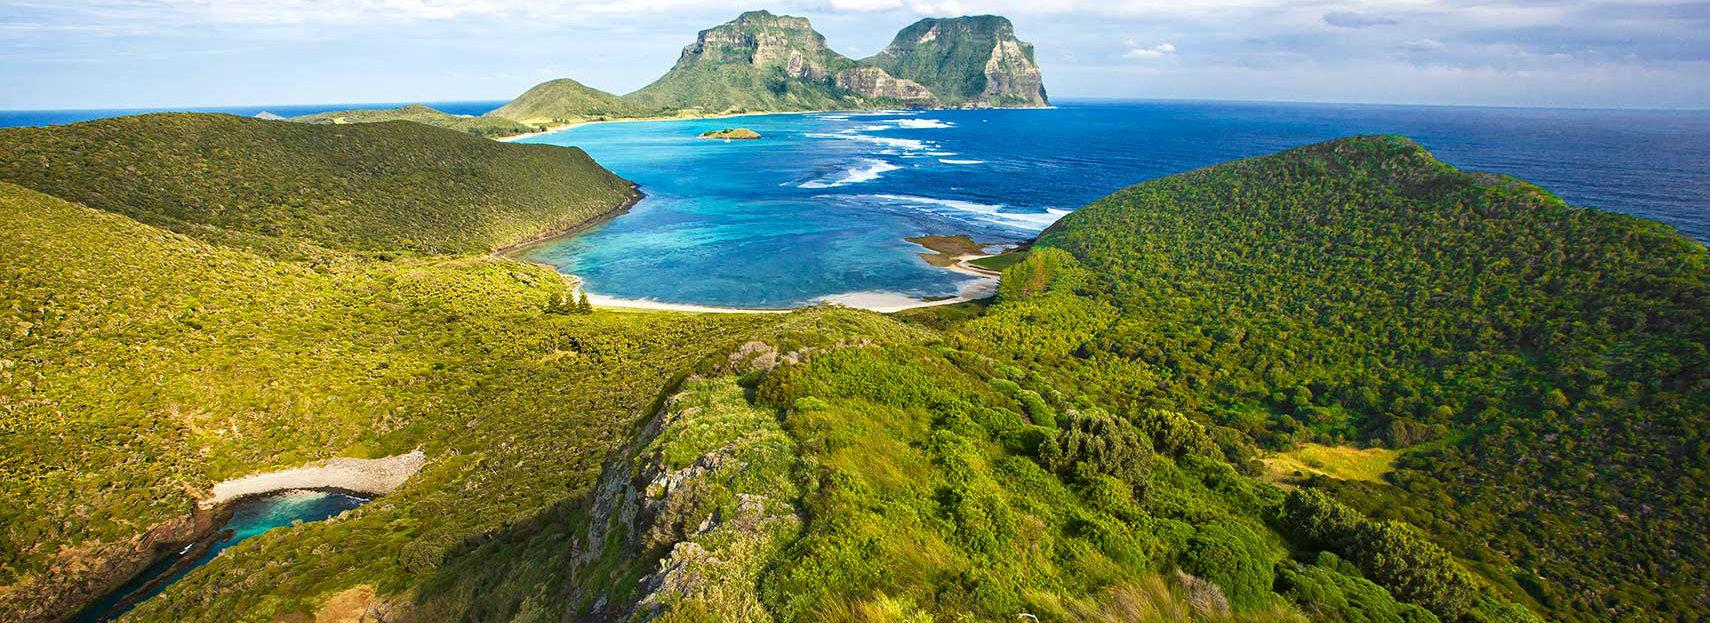 Map Australia Showing Lord Howe Island